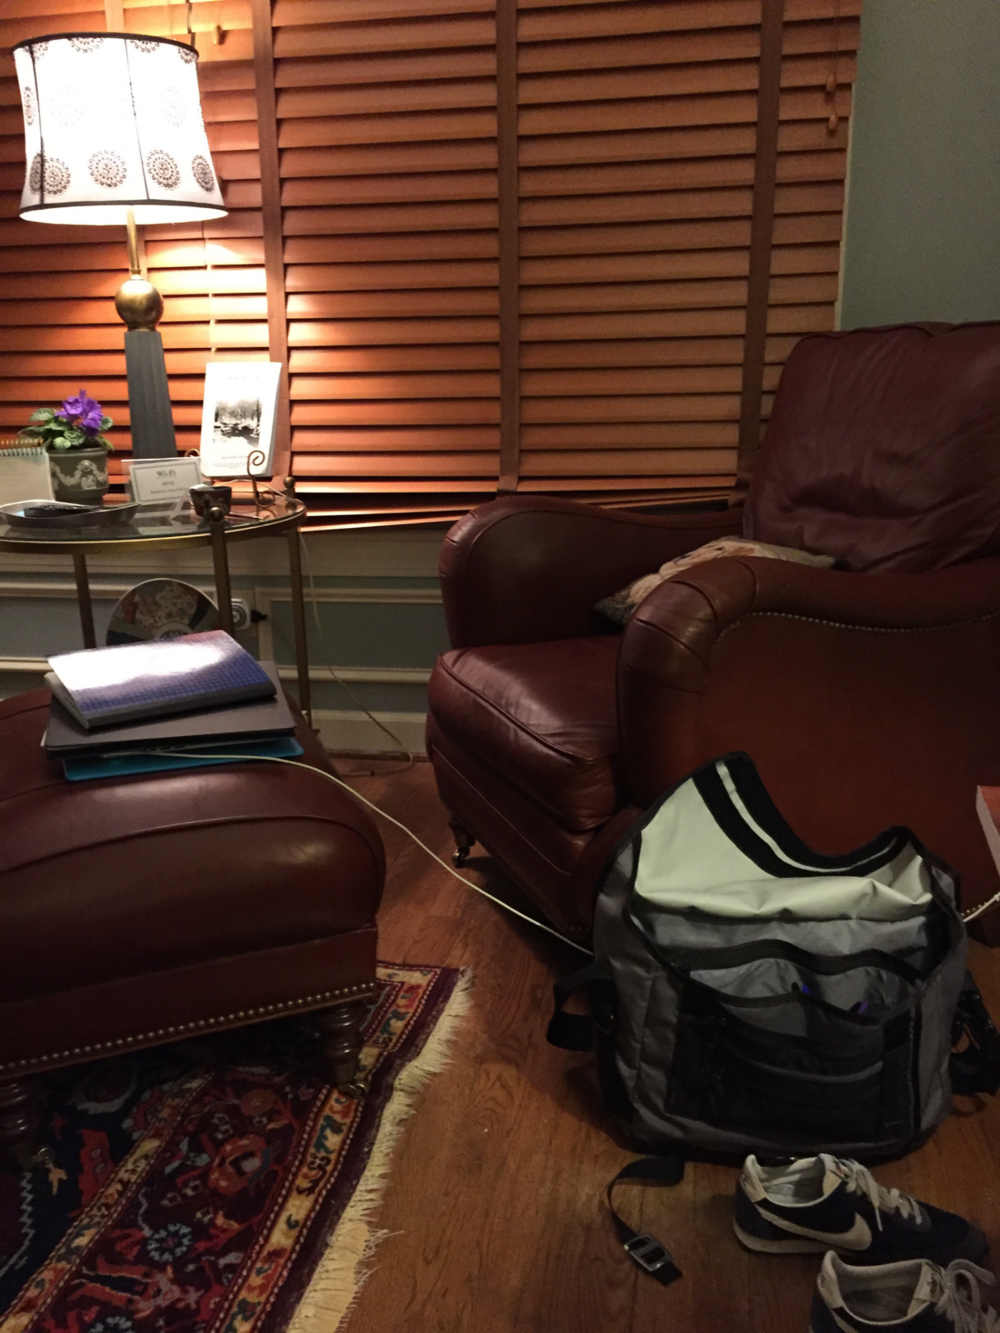 The comfy chair where I did most of my writing